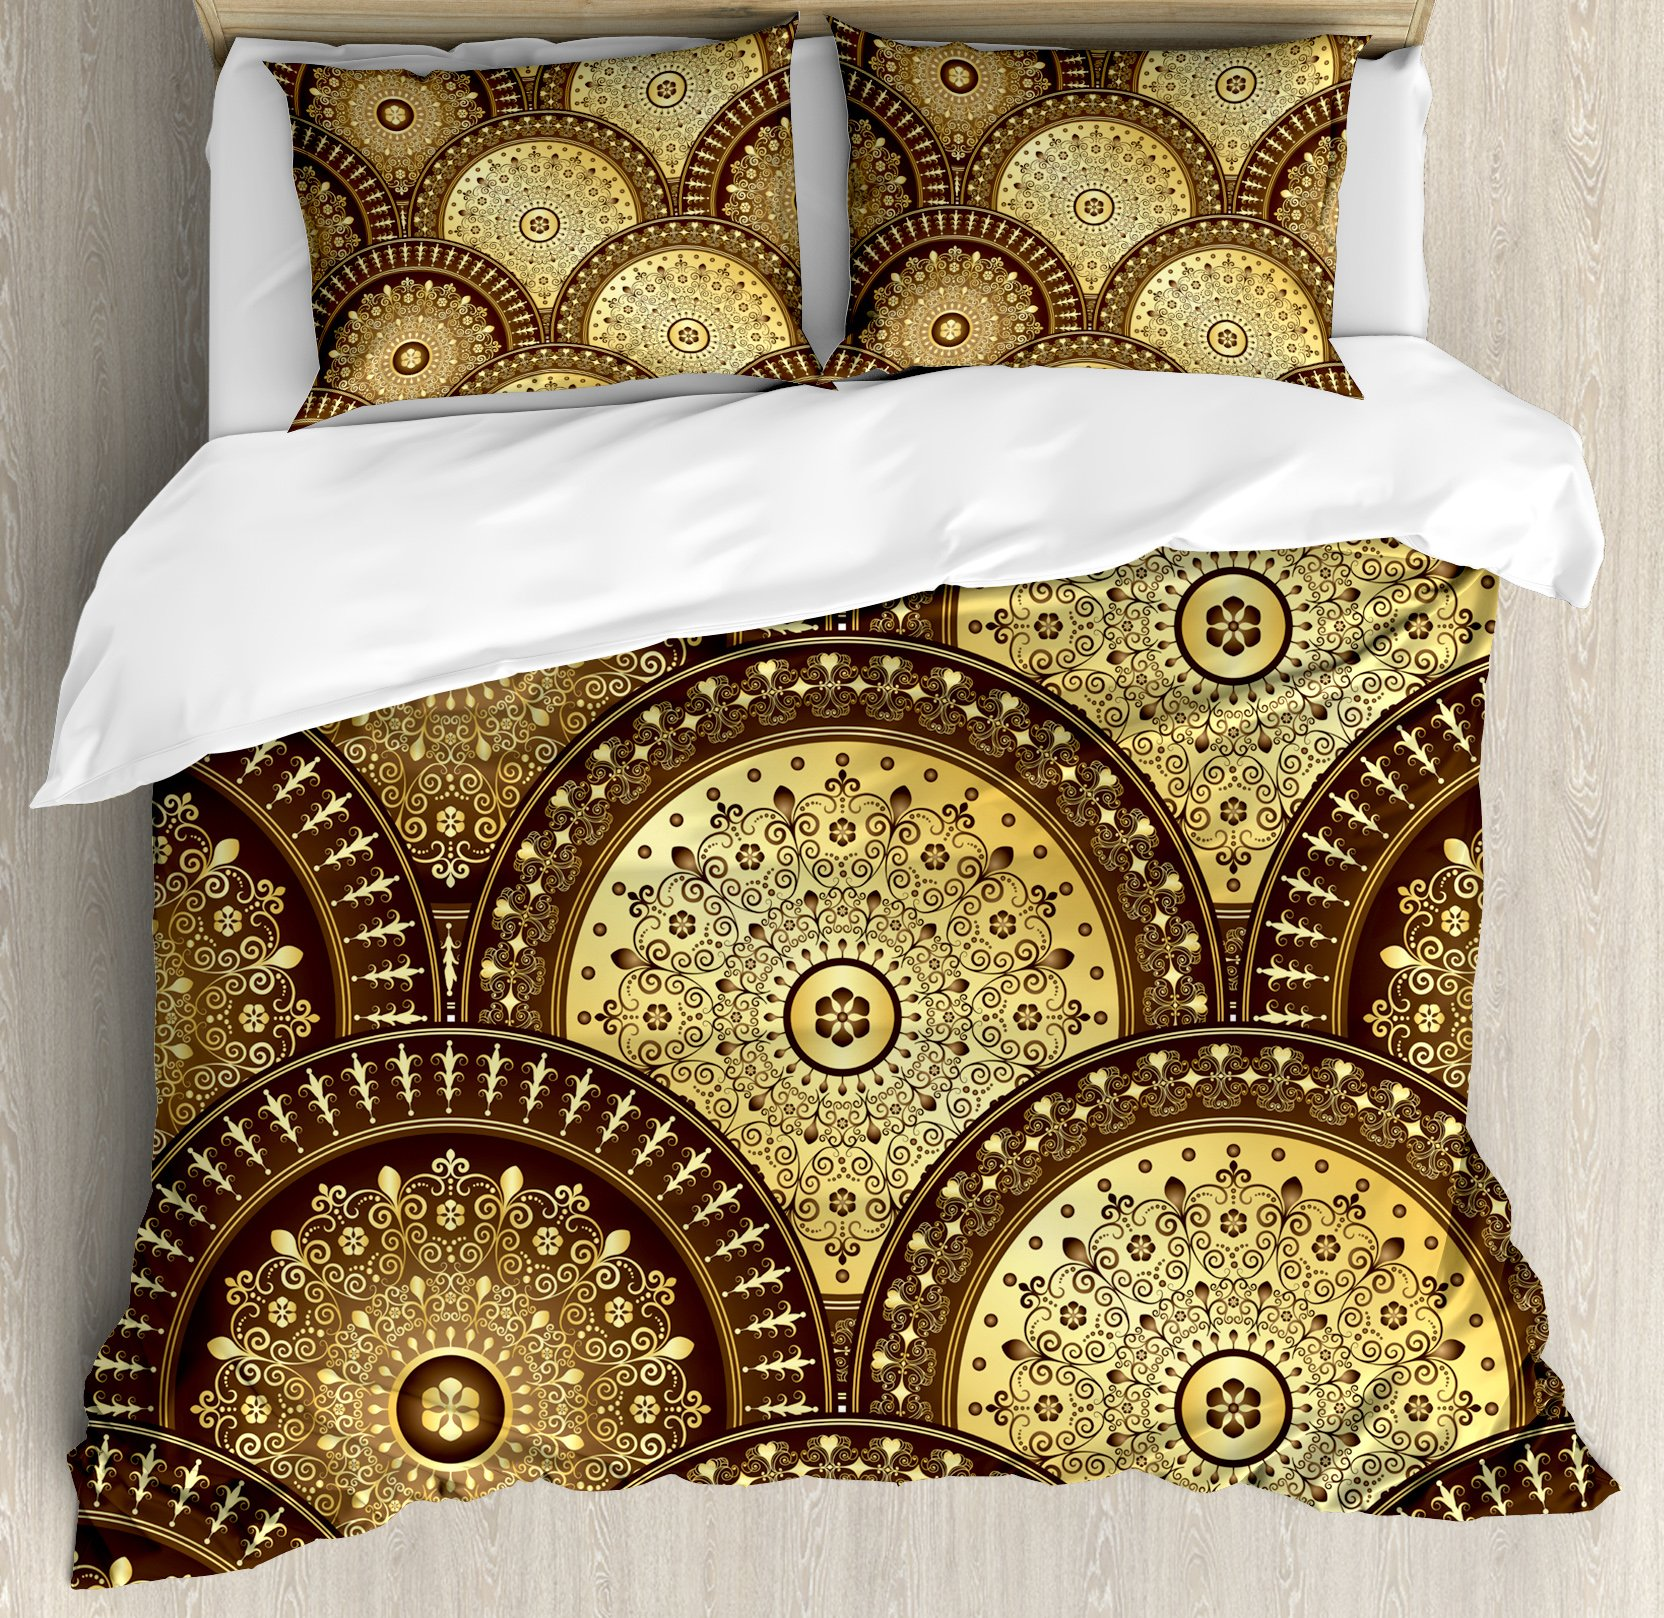 Gold Mandala King Size Duvet Cover Set by Ambesonne, India Culture Motifs Lapping Over Romantic Medallion Like Wavy Pattern, Decorative 3 Piece Bedding Set with 2 Pillow Shams, Gold and Brown